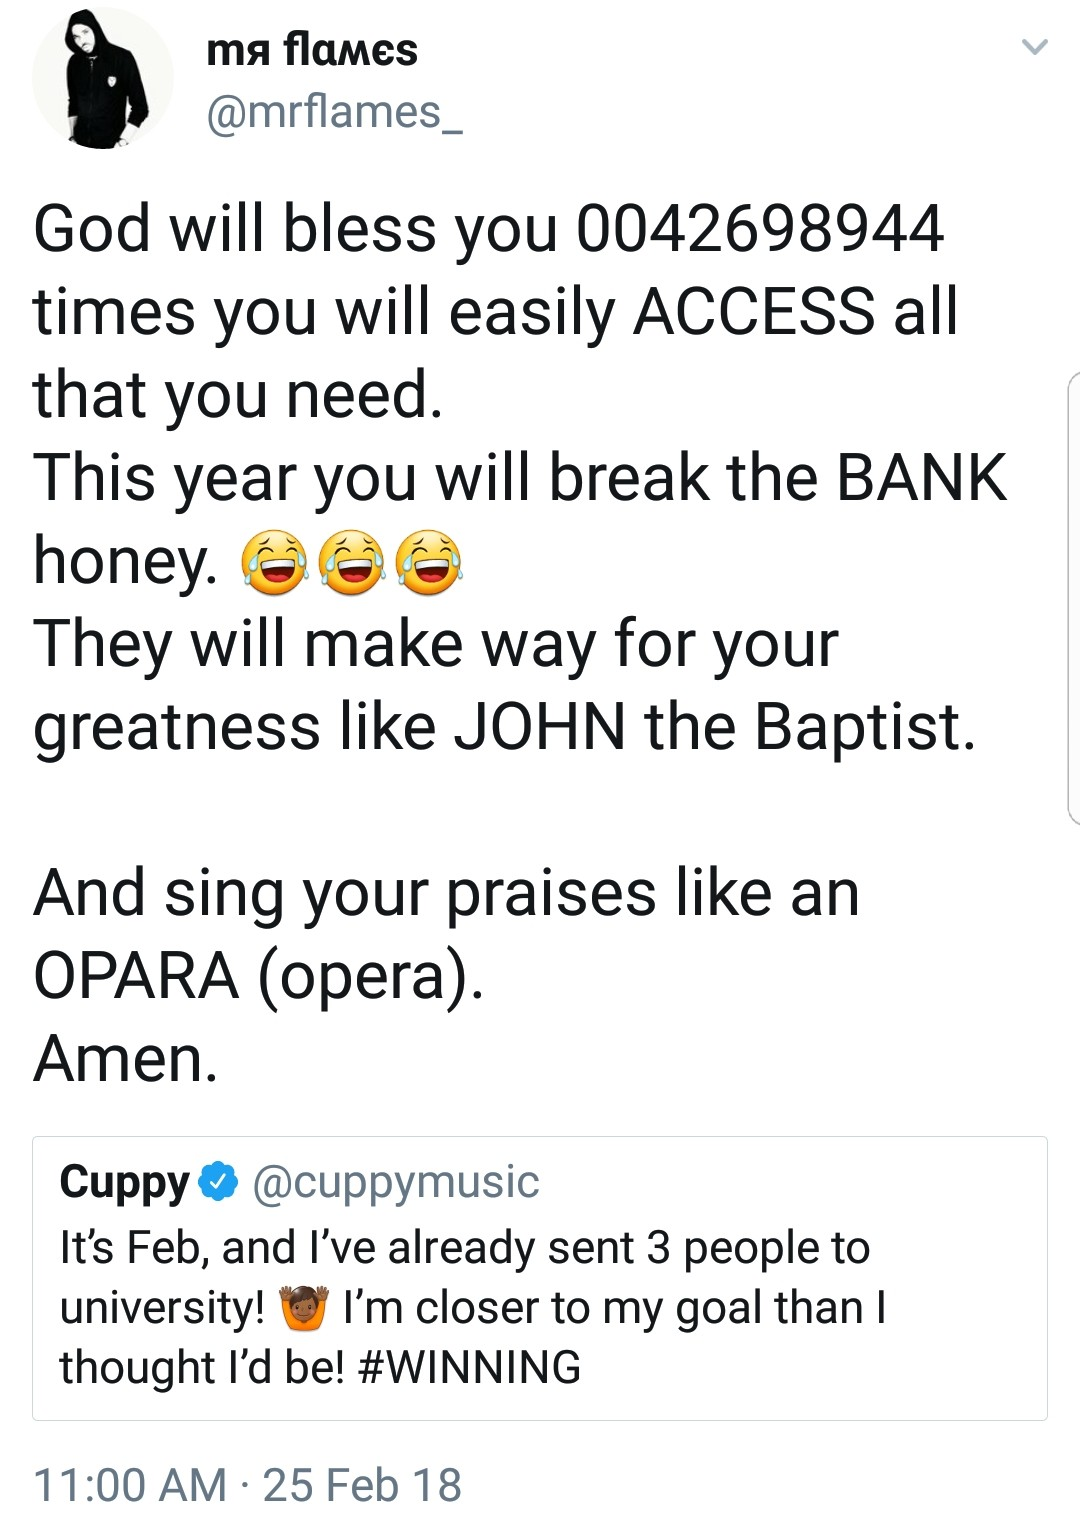 See the creative way this twitter user sent his account number to DJ Cuppy for financial assistant...lol